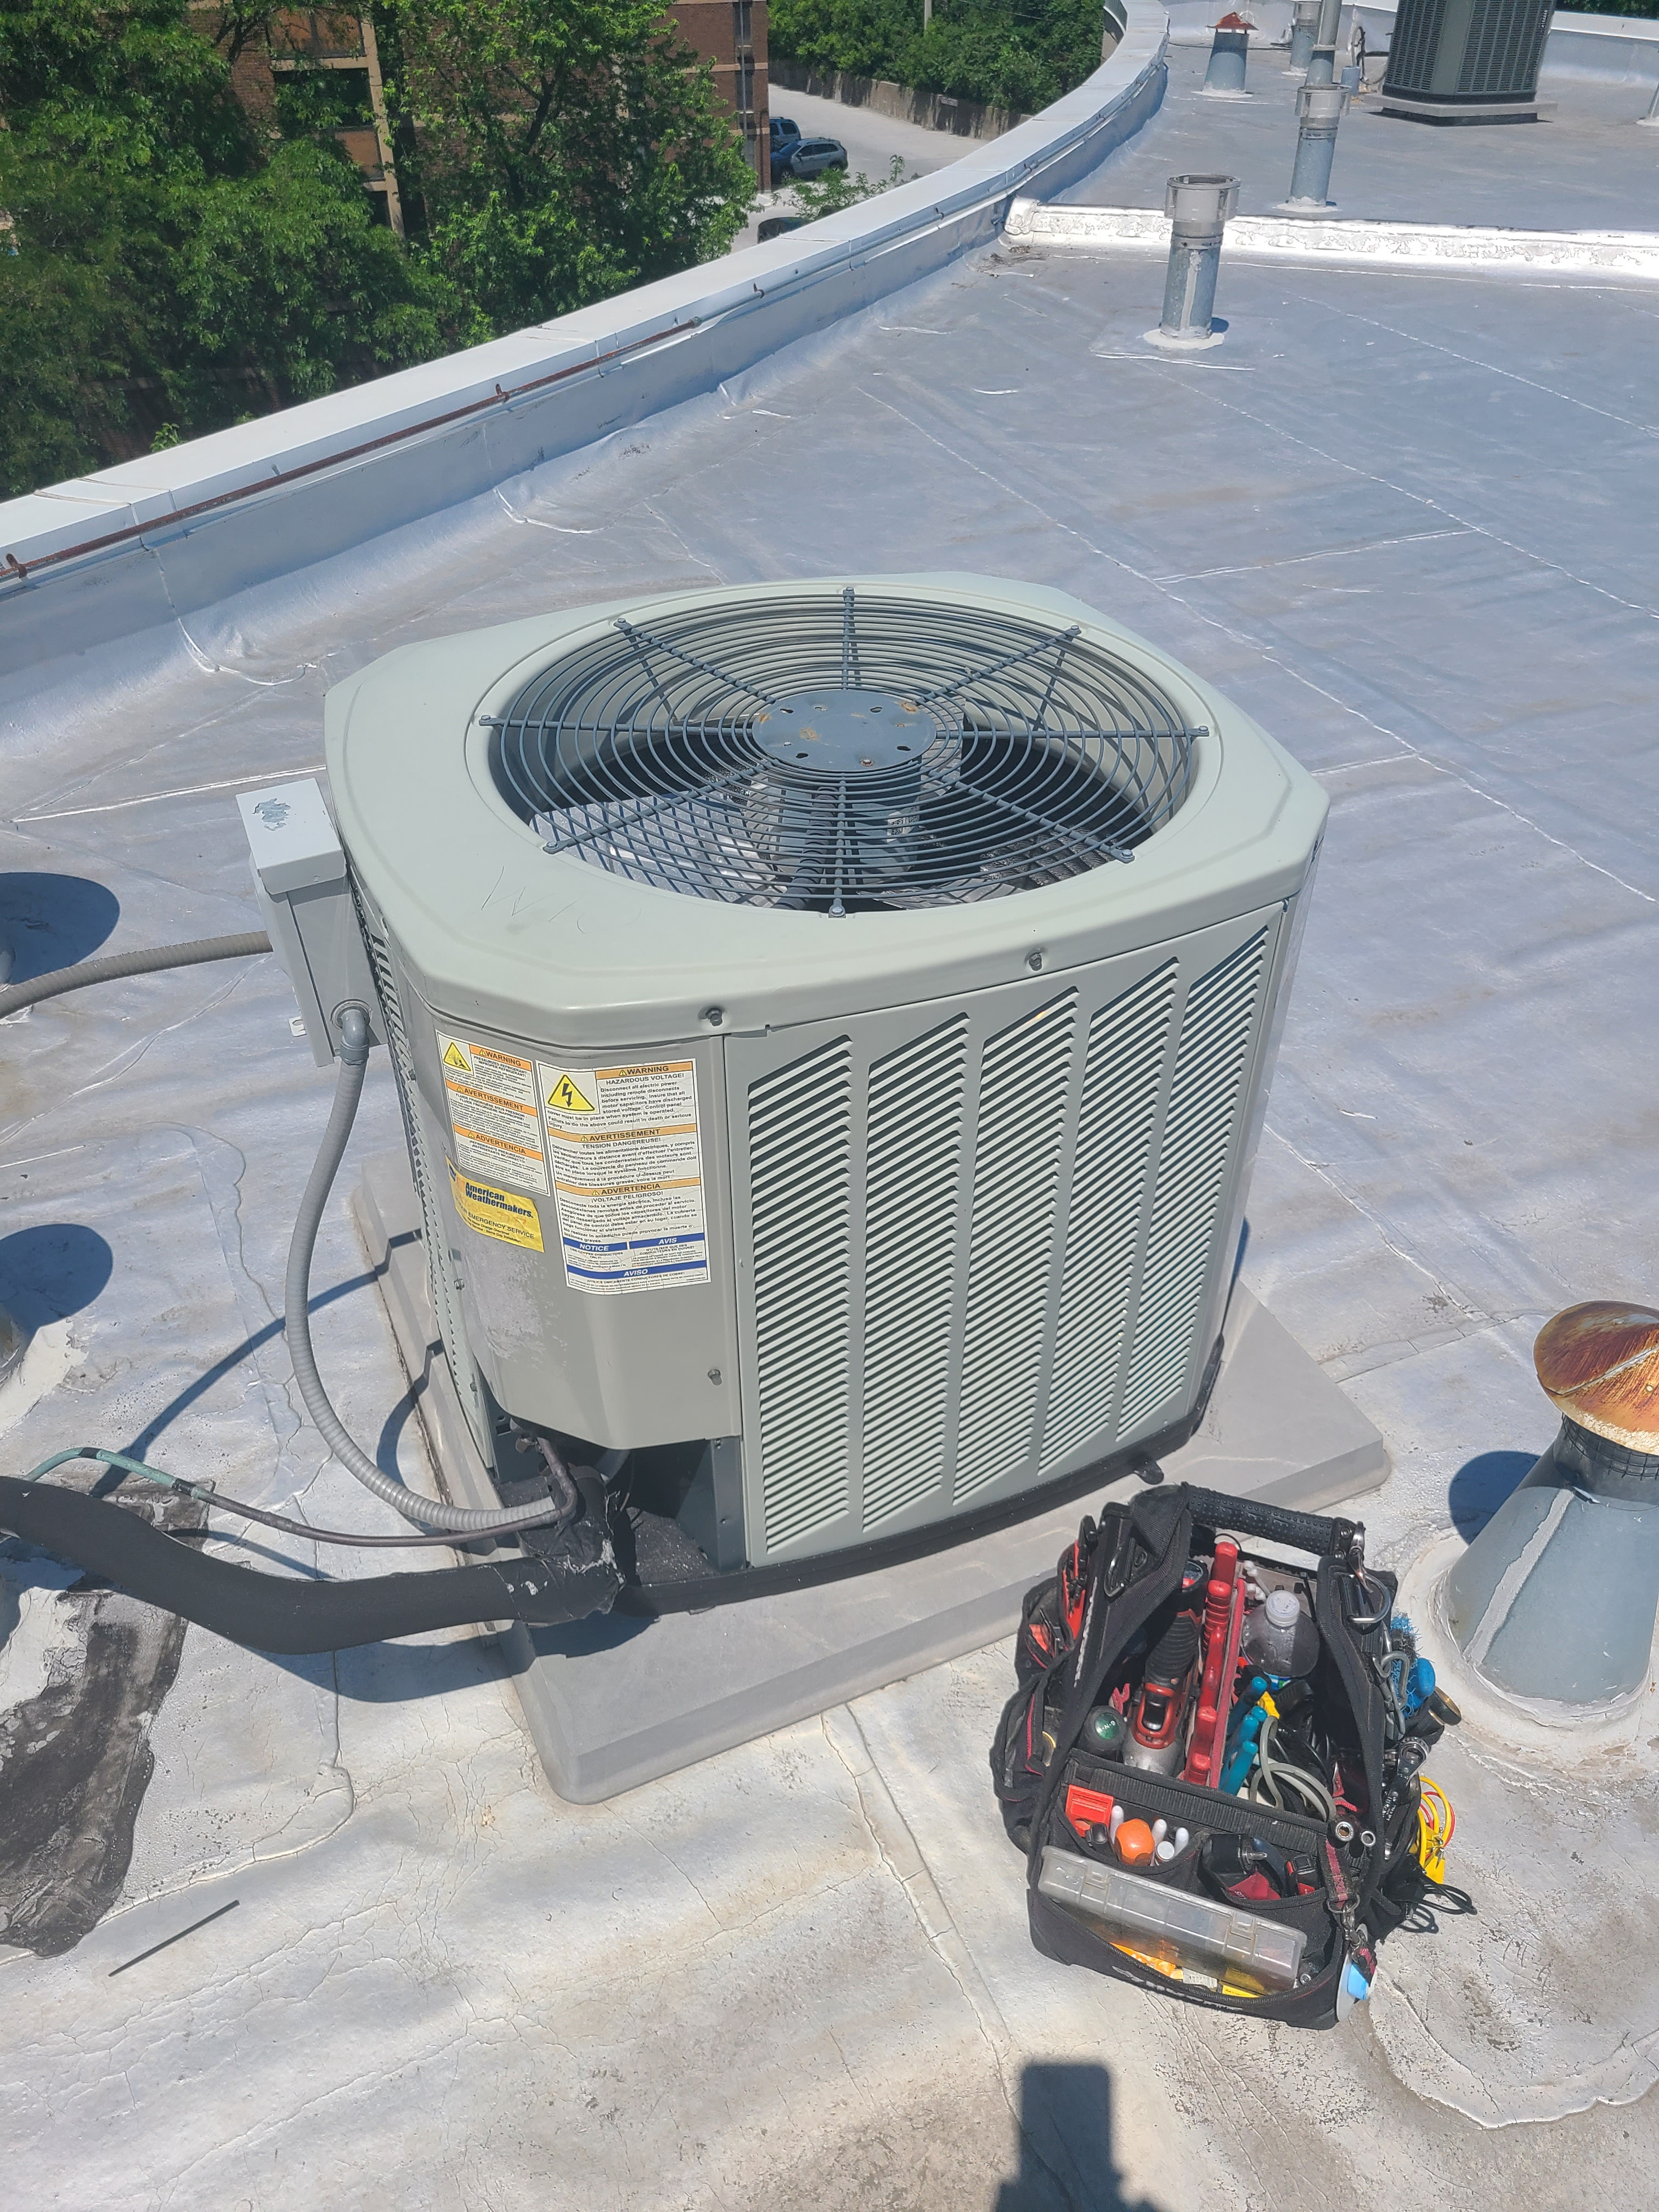 American Standard summer ac tune up. System cleaned and checked and ready for summer.